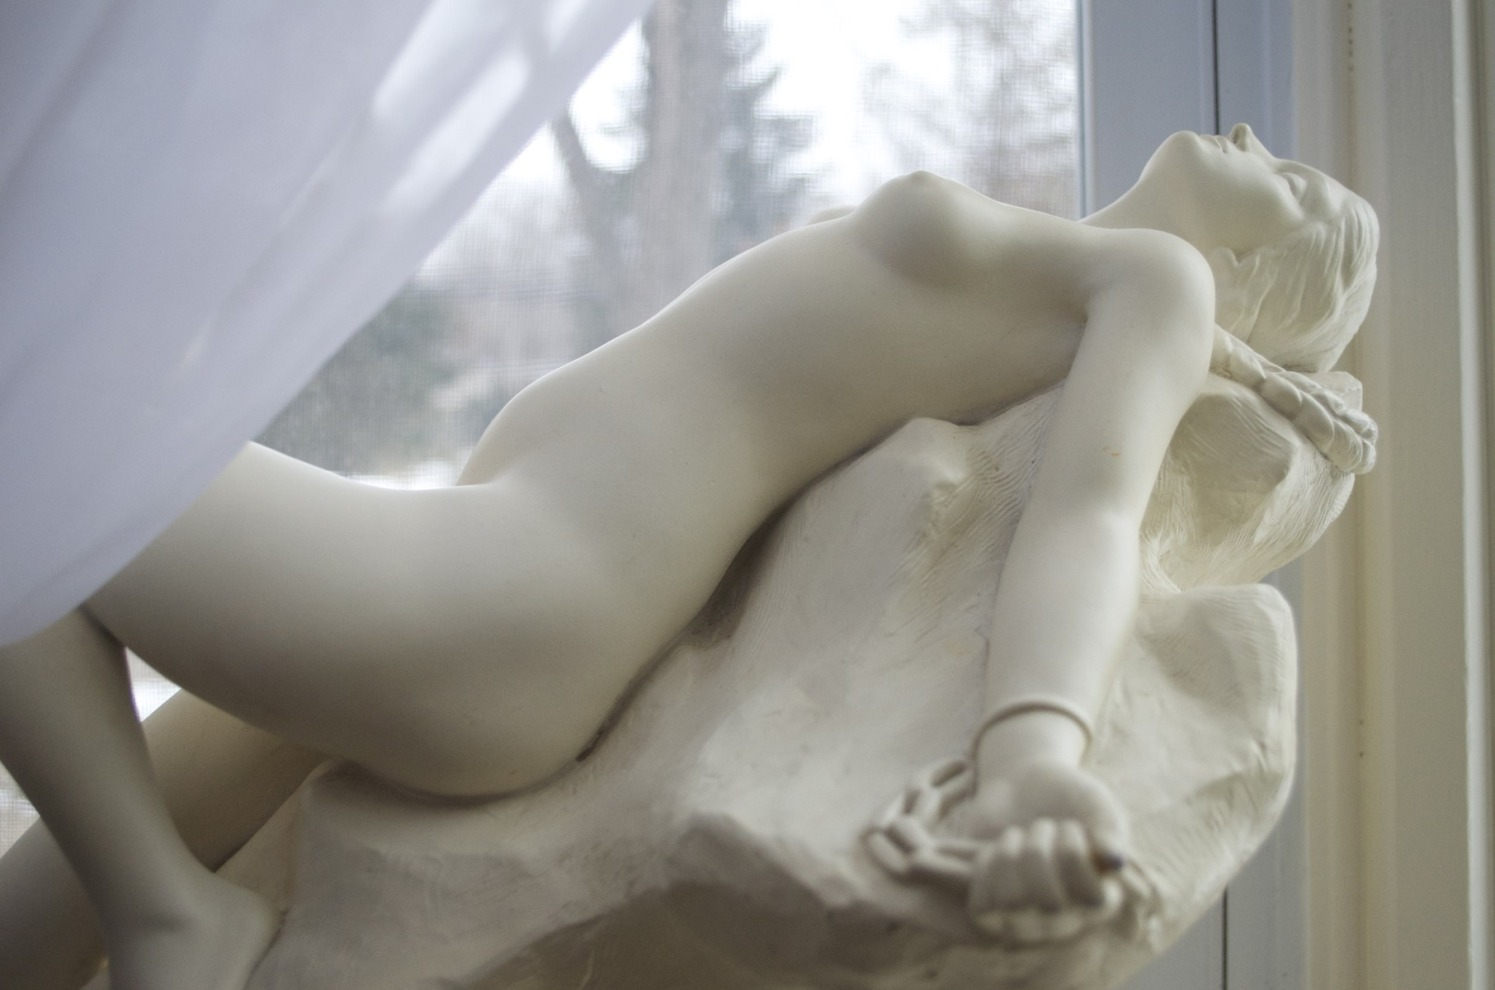 woman-white-monument-statue-greek-ancient-983440-pxhere.com